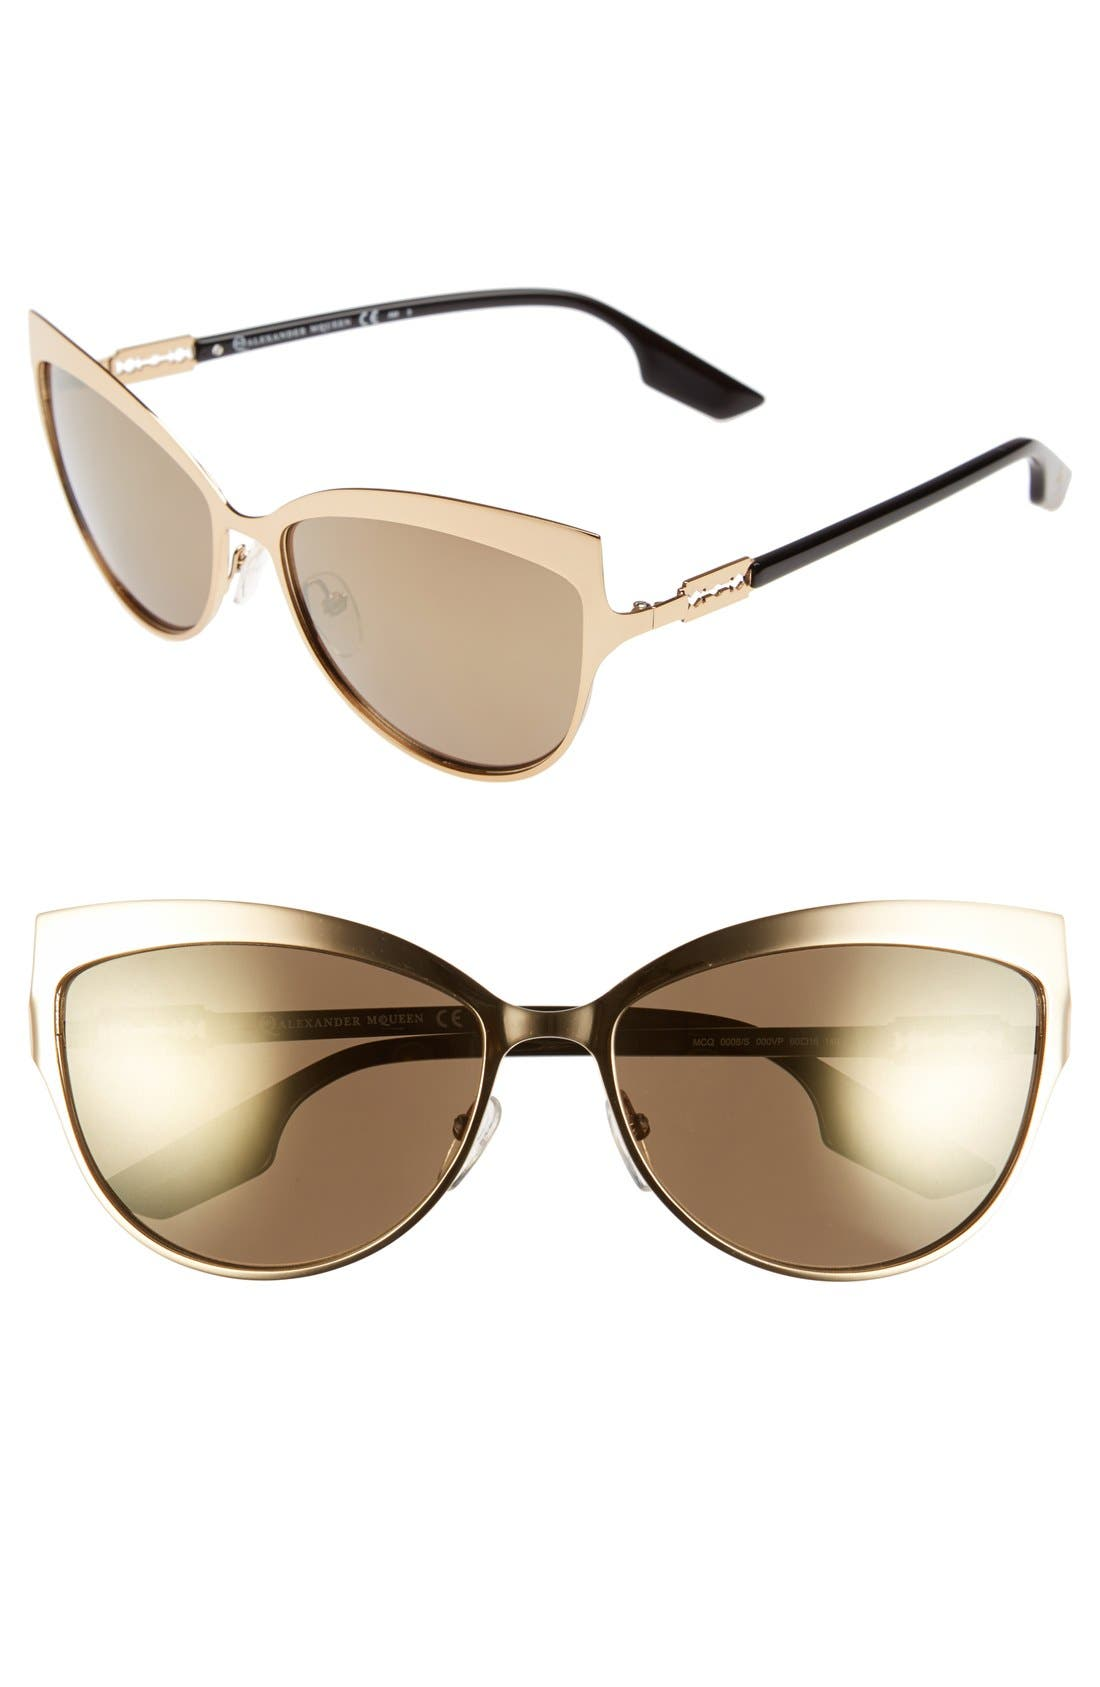 Alternate Image 1 Selected - McQ by Alexander McQueen 'Butterfly' 60mm Stainless Steel Sunglasses